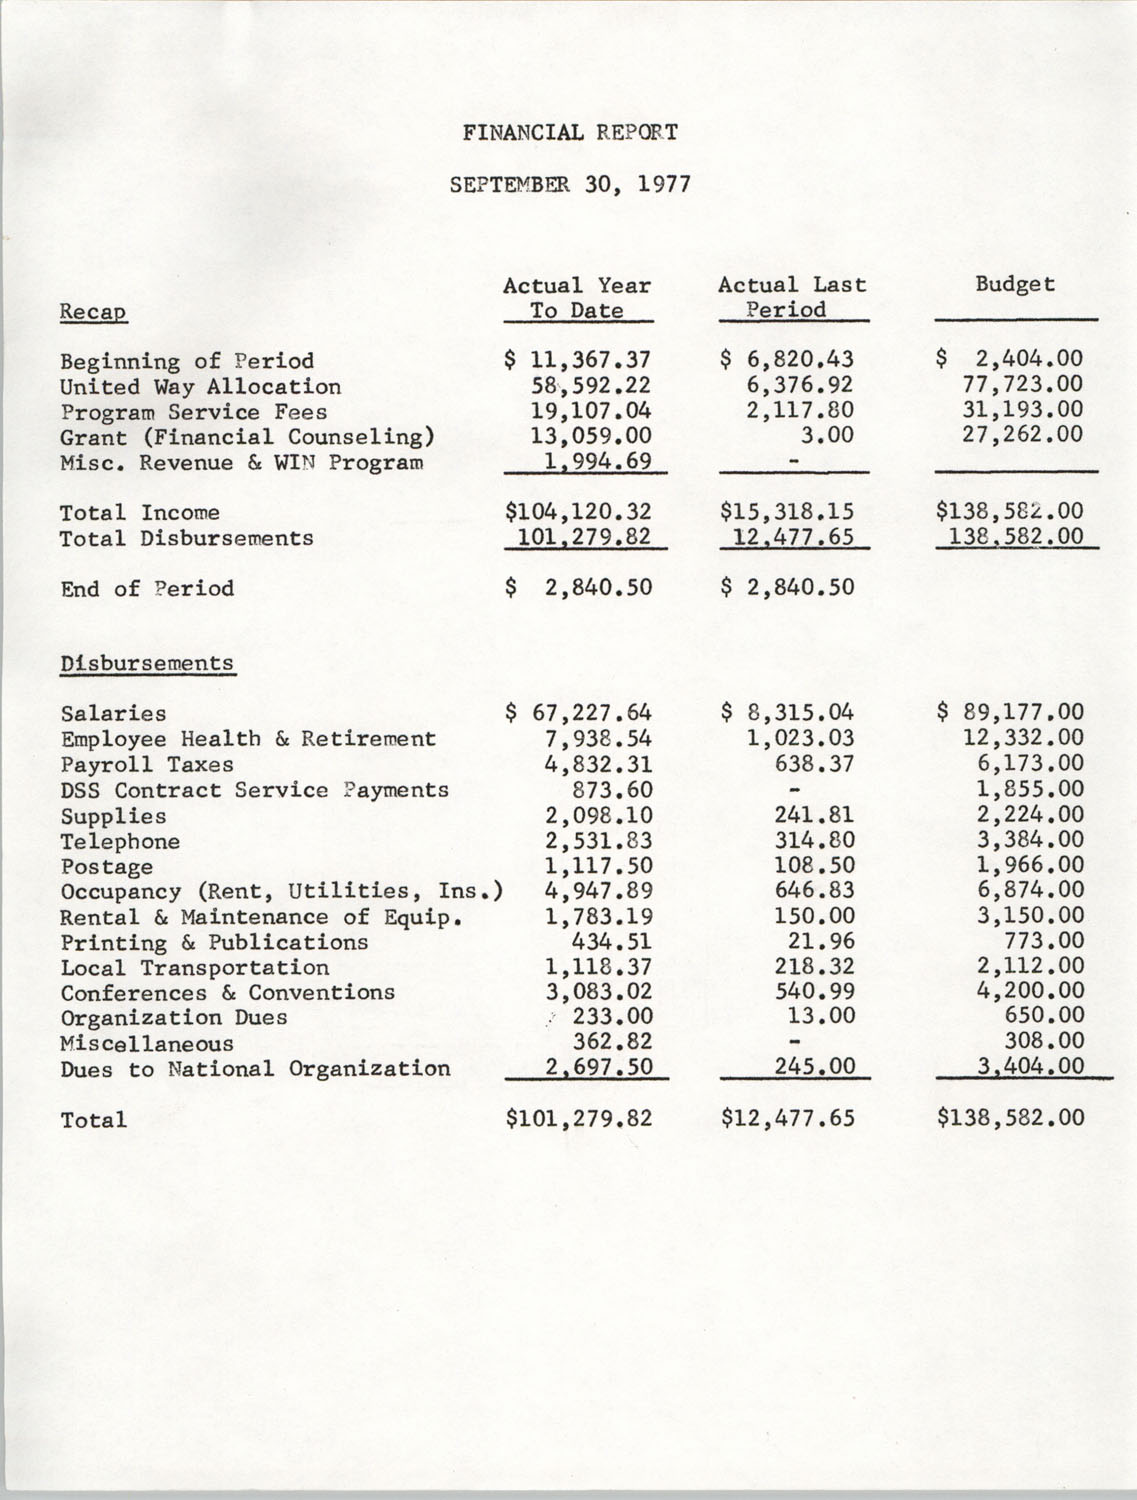 Financial Report, Family Service, September 30, 1977